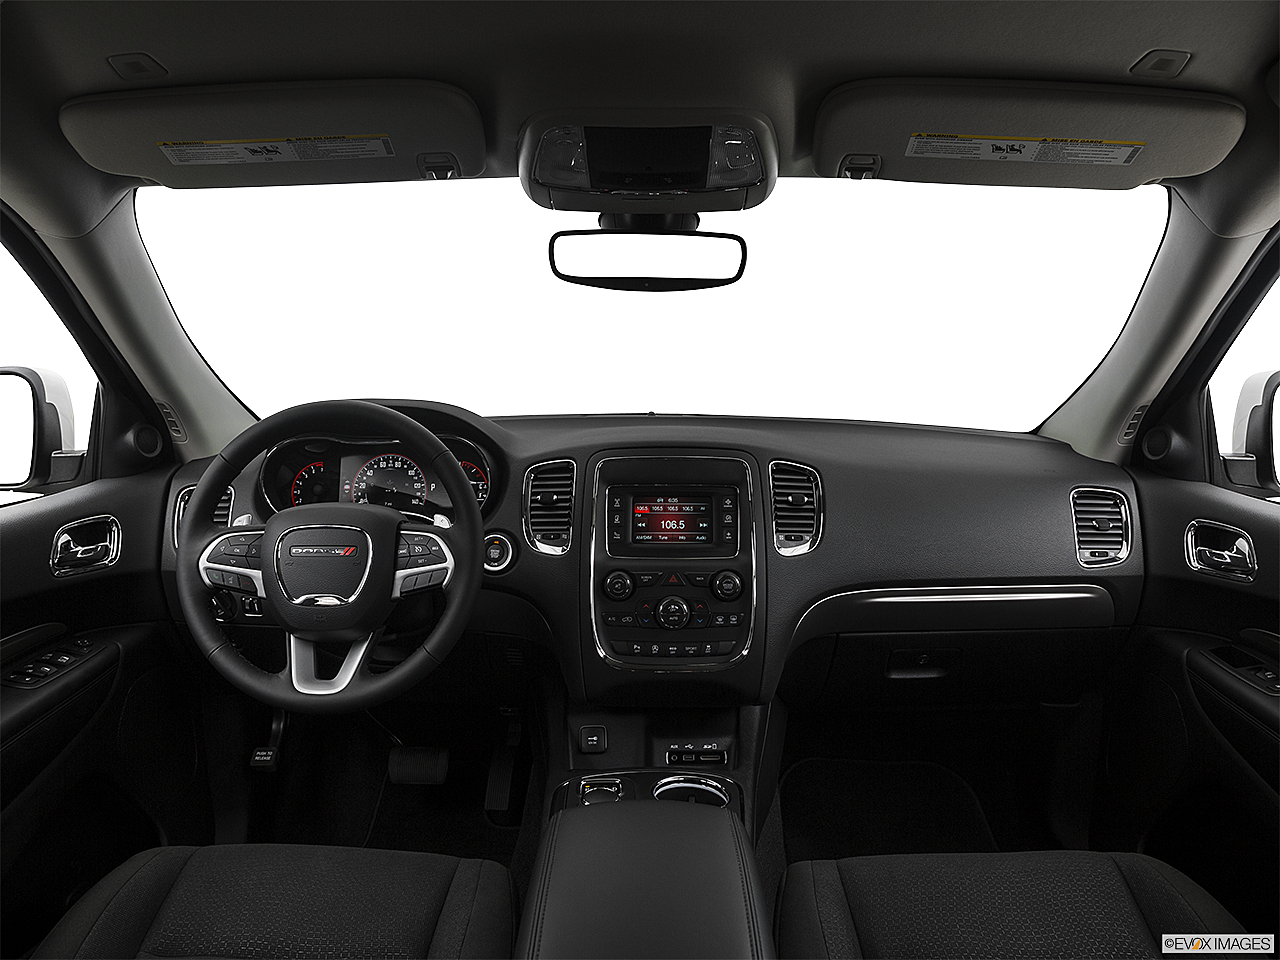 2017 Dodge Durango Sxt Centered Wide Dash Shot